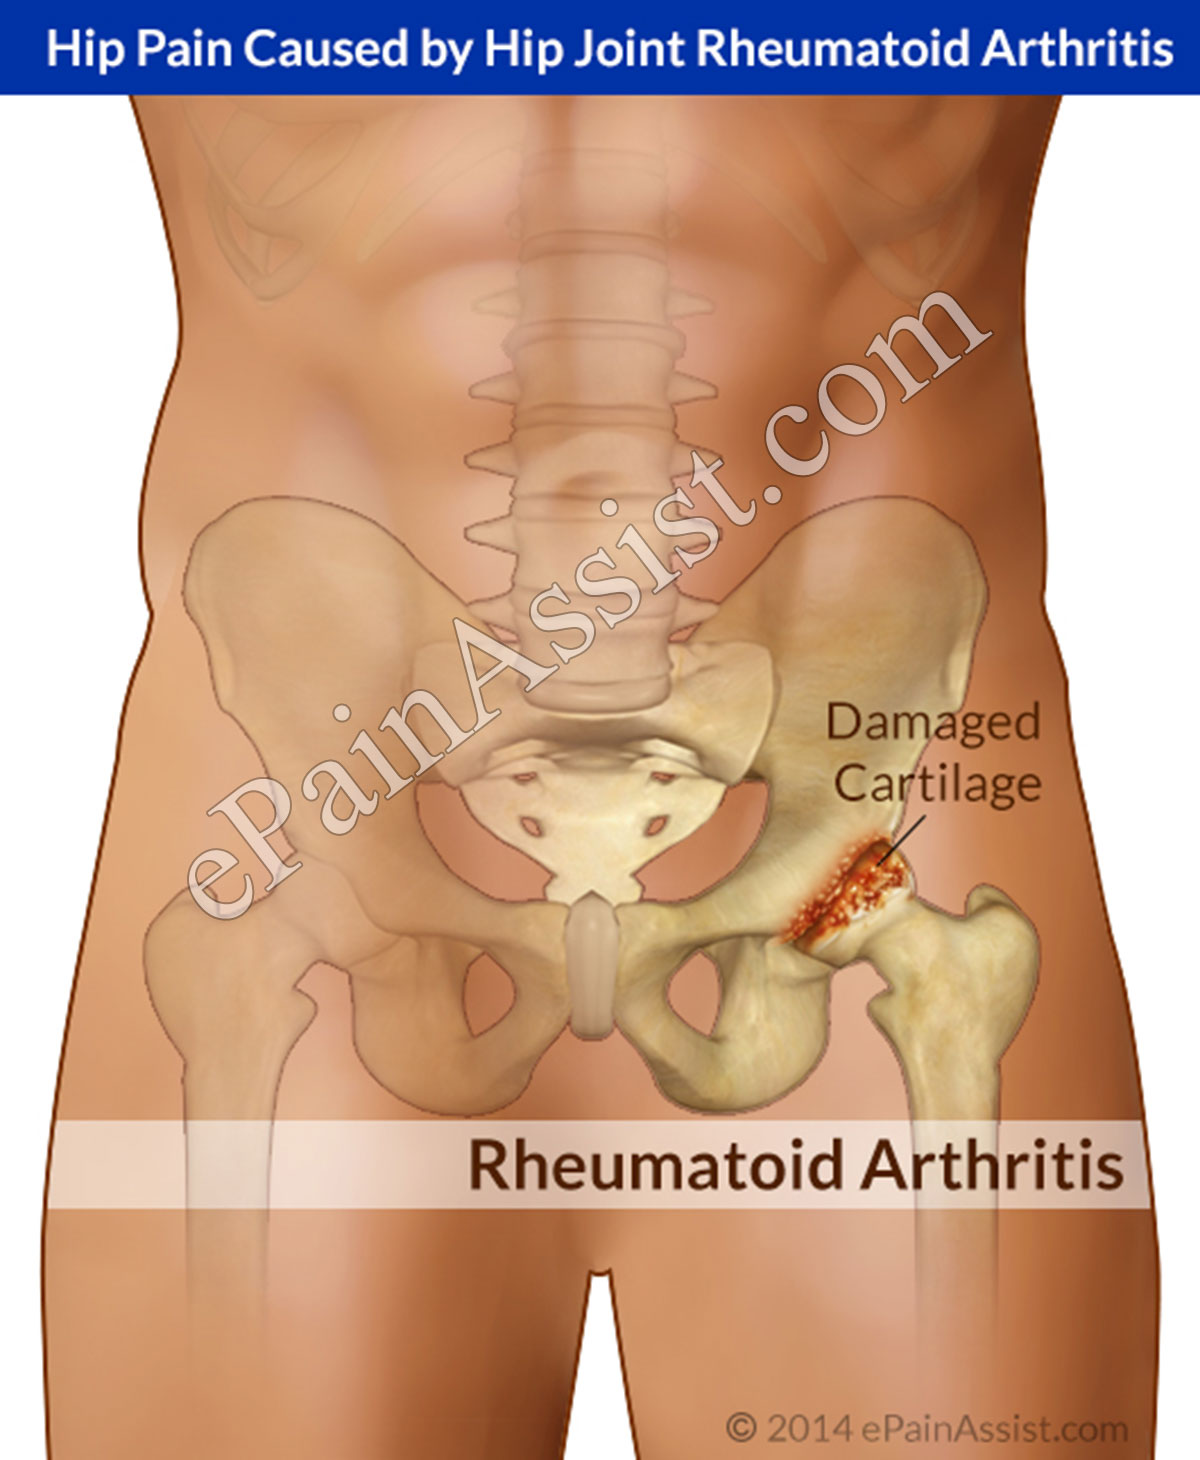 Hip Pain Caused by Hip Joint Rheumatoid Arthritis